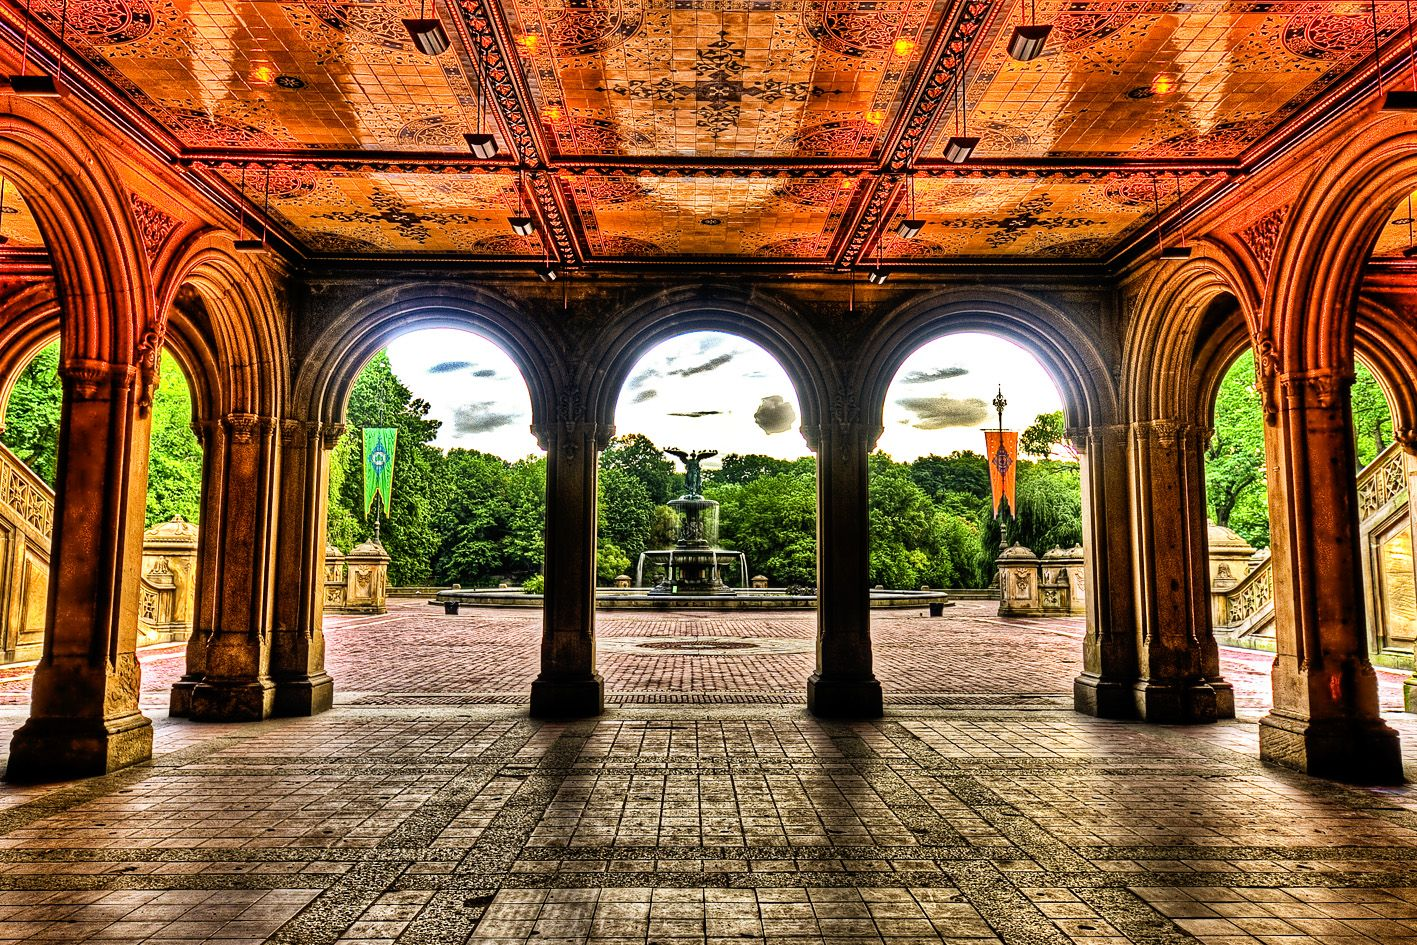 bethesda terrace, central park, nyc | central park and fountain